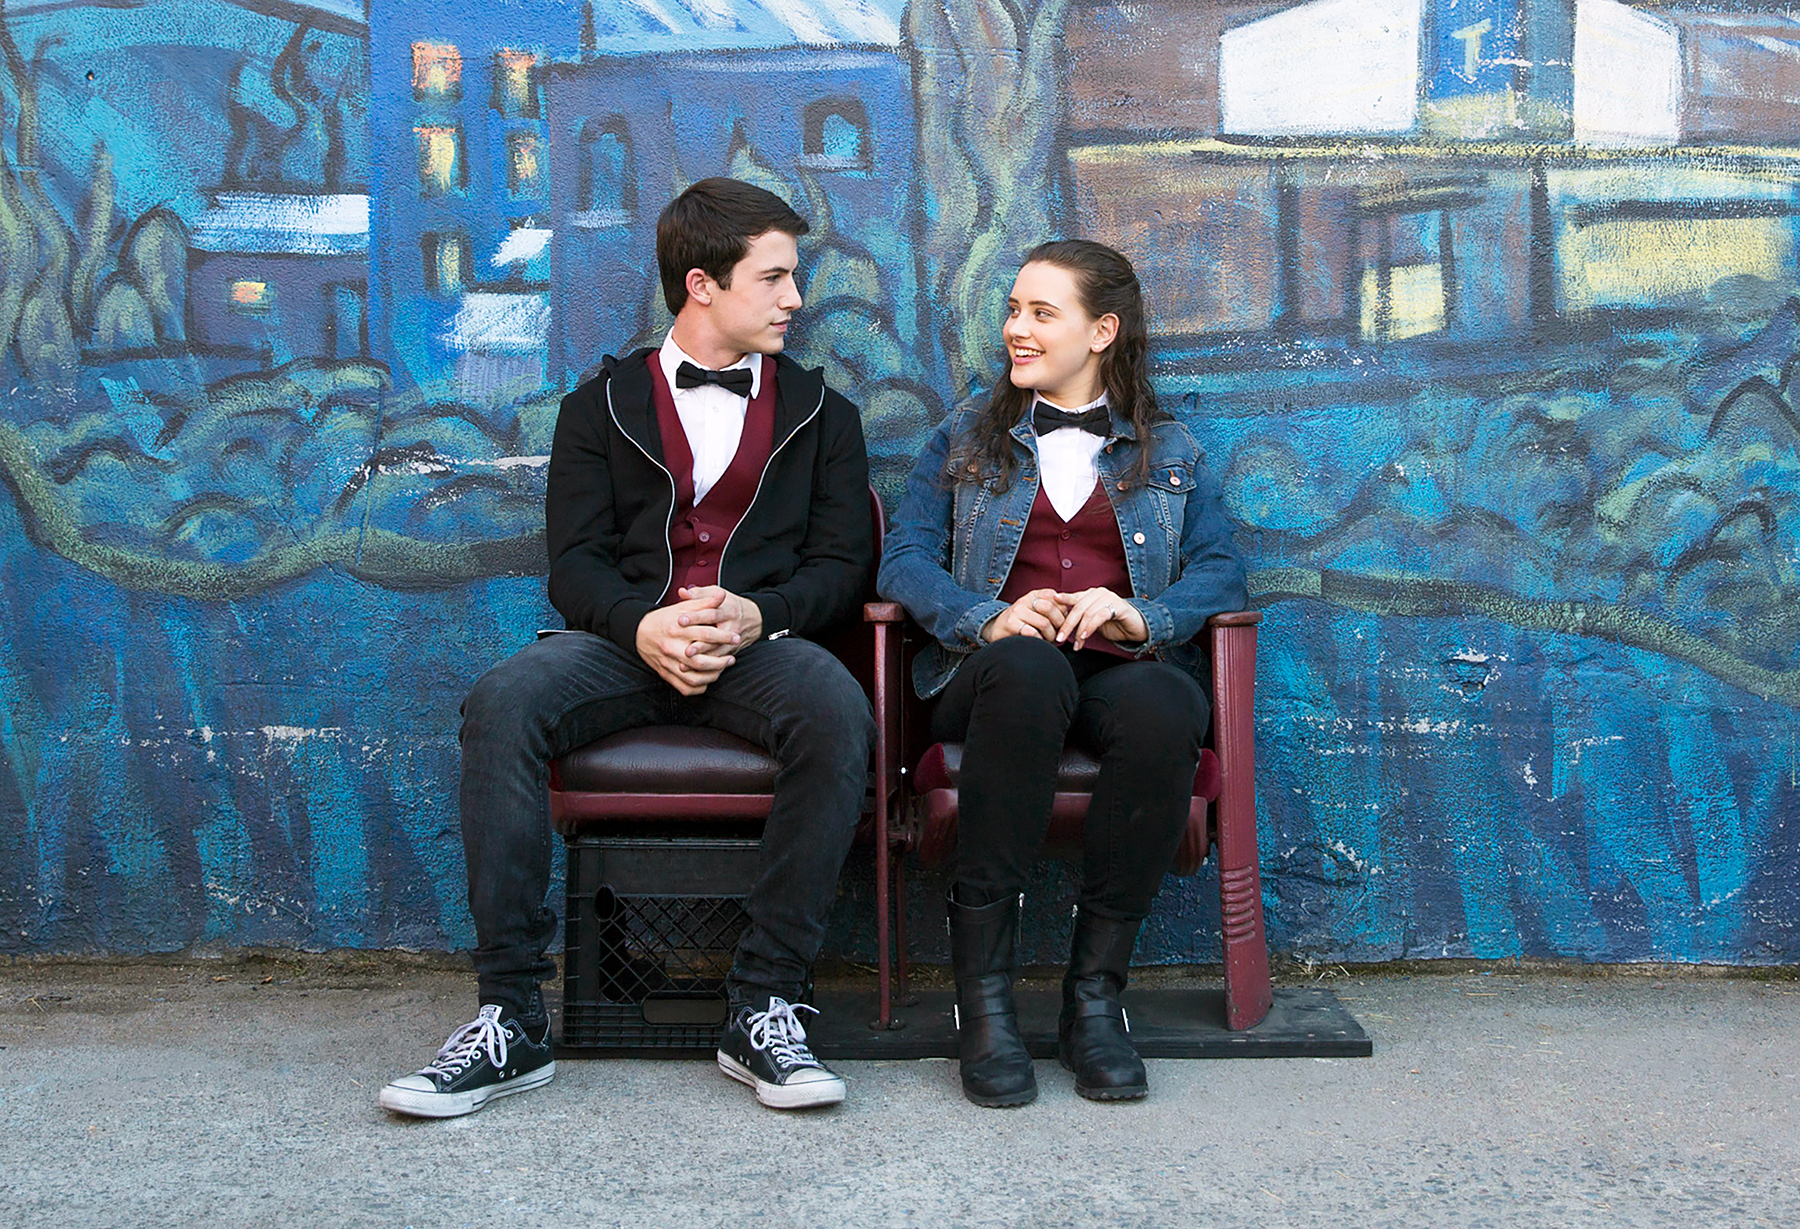 Katherine Langford Dylan Minnette 13 Reasons Why